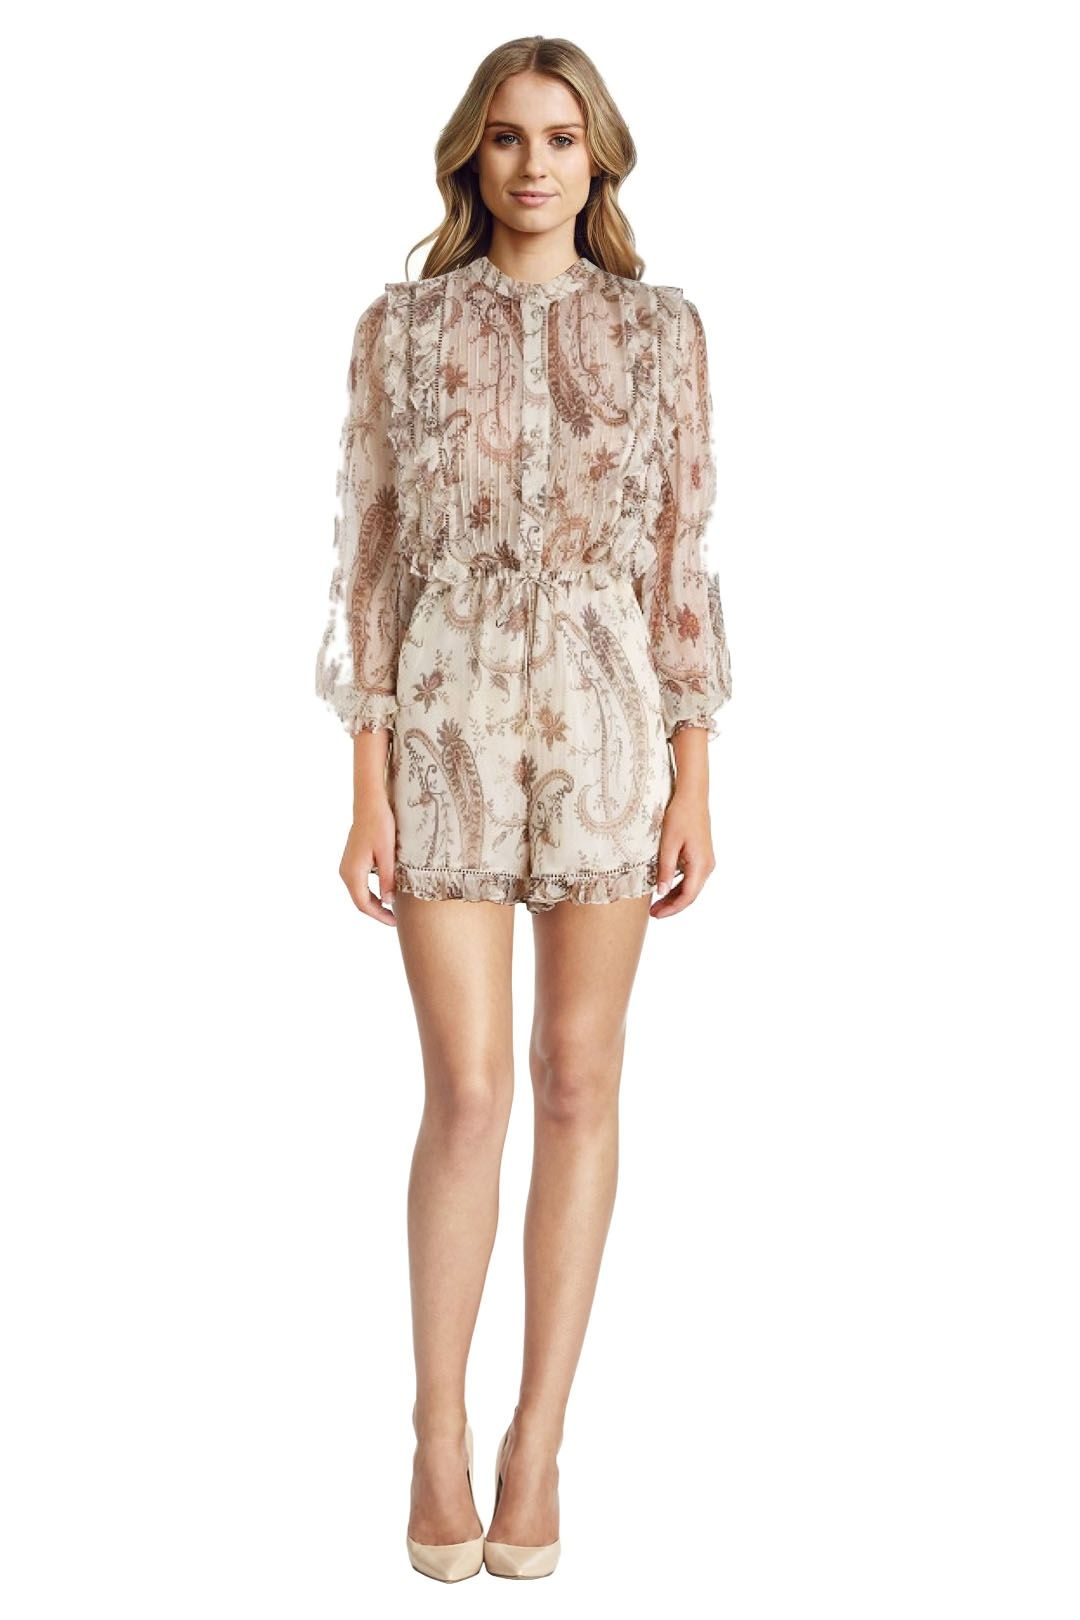 Zimmermann - Mischeif Frill Playsuit - Rustic Paisley Print - Front